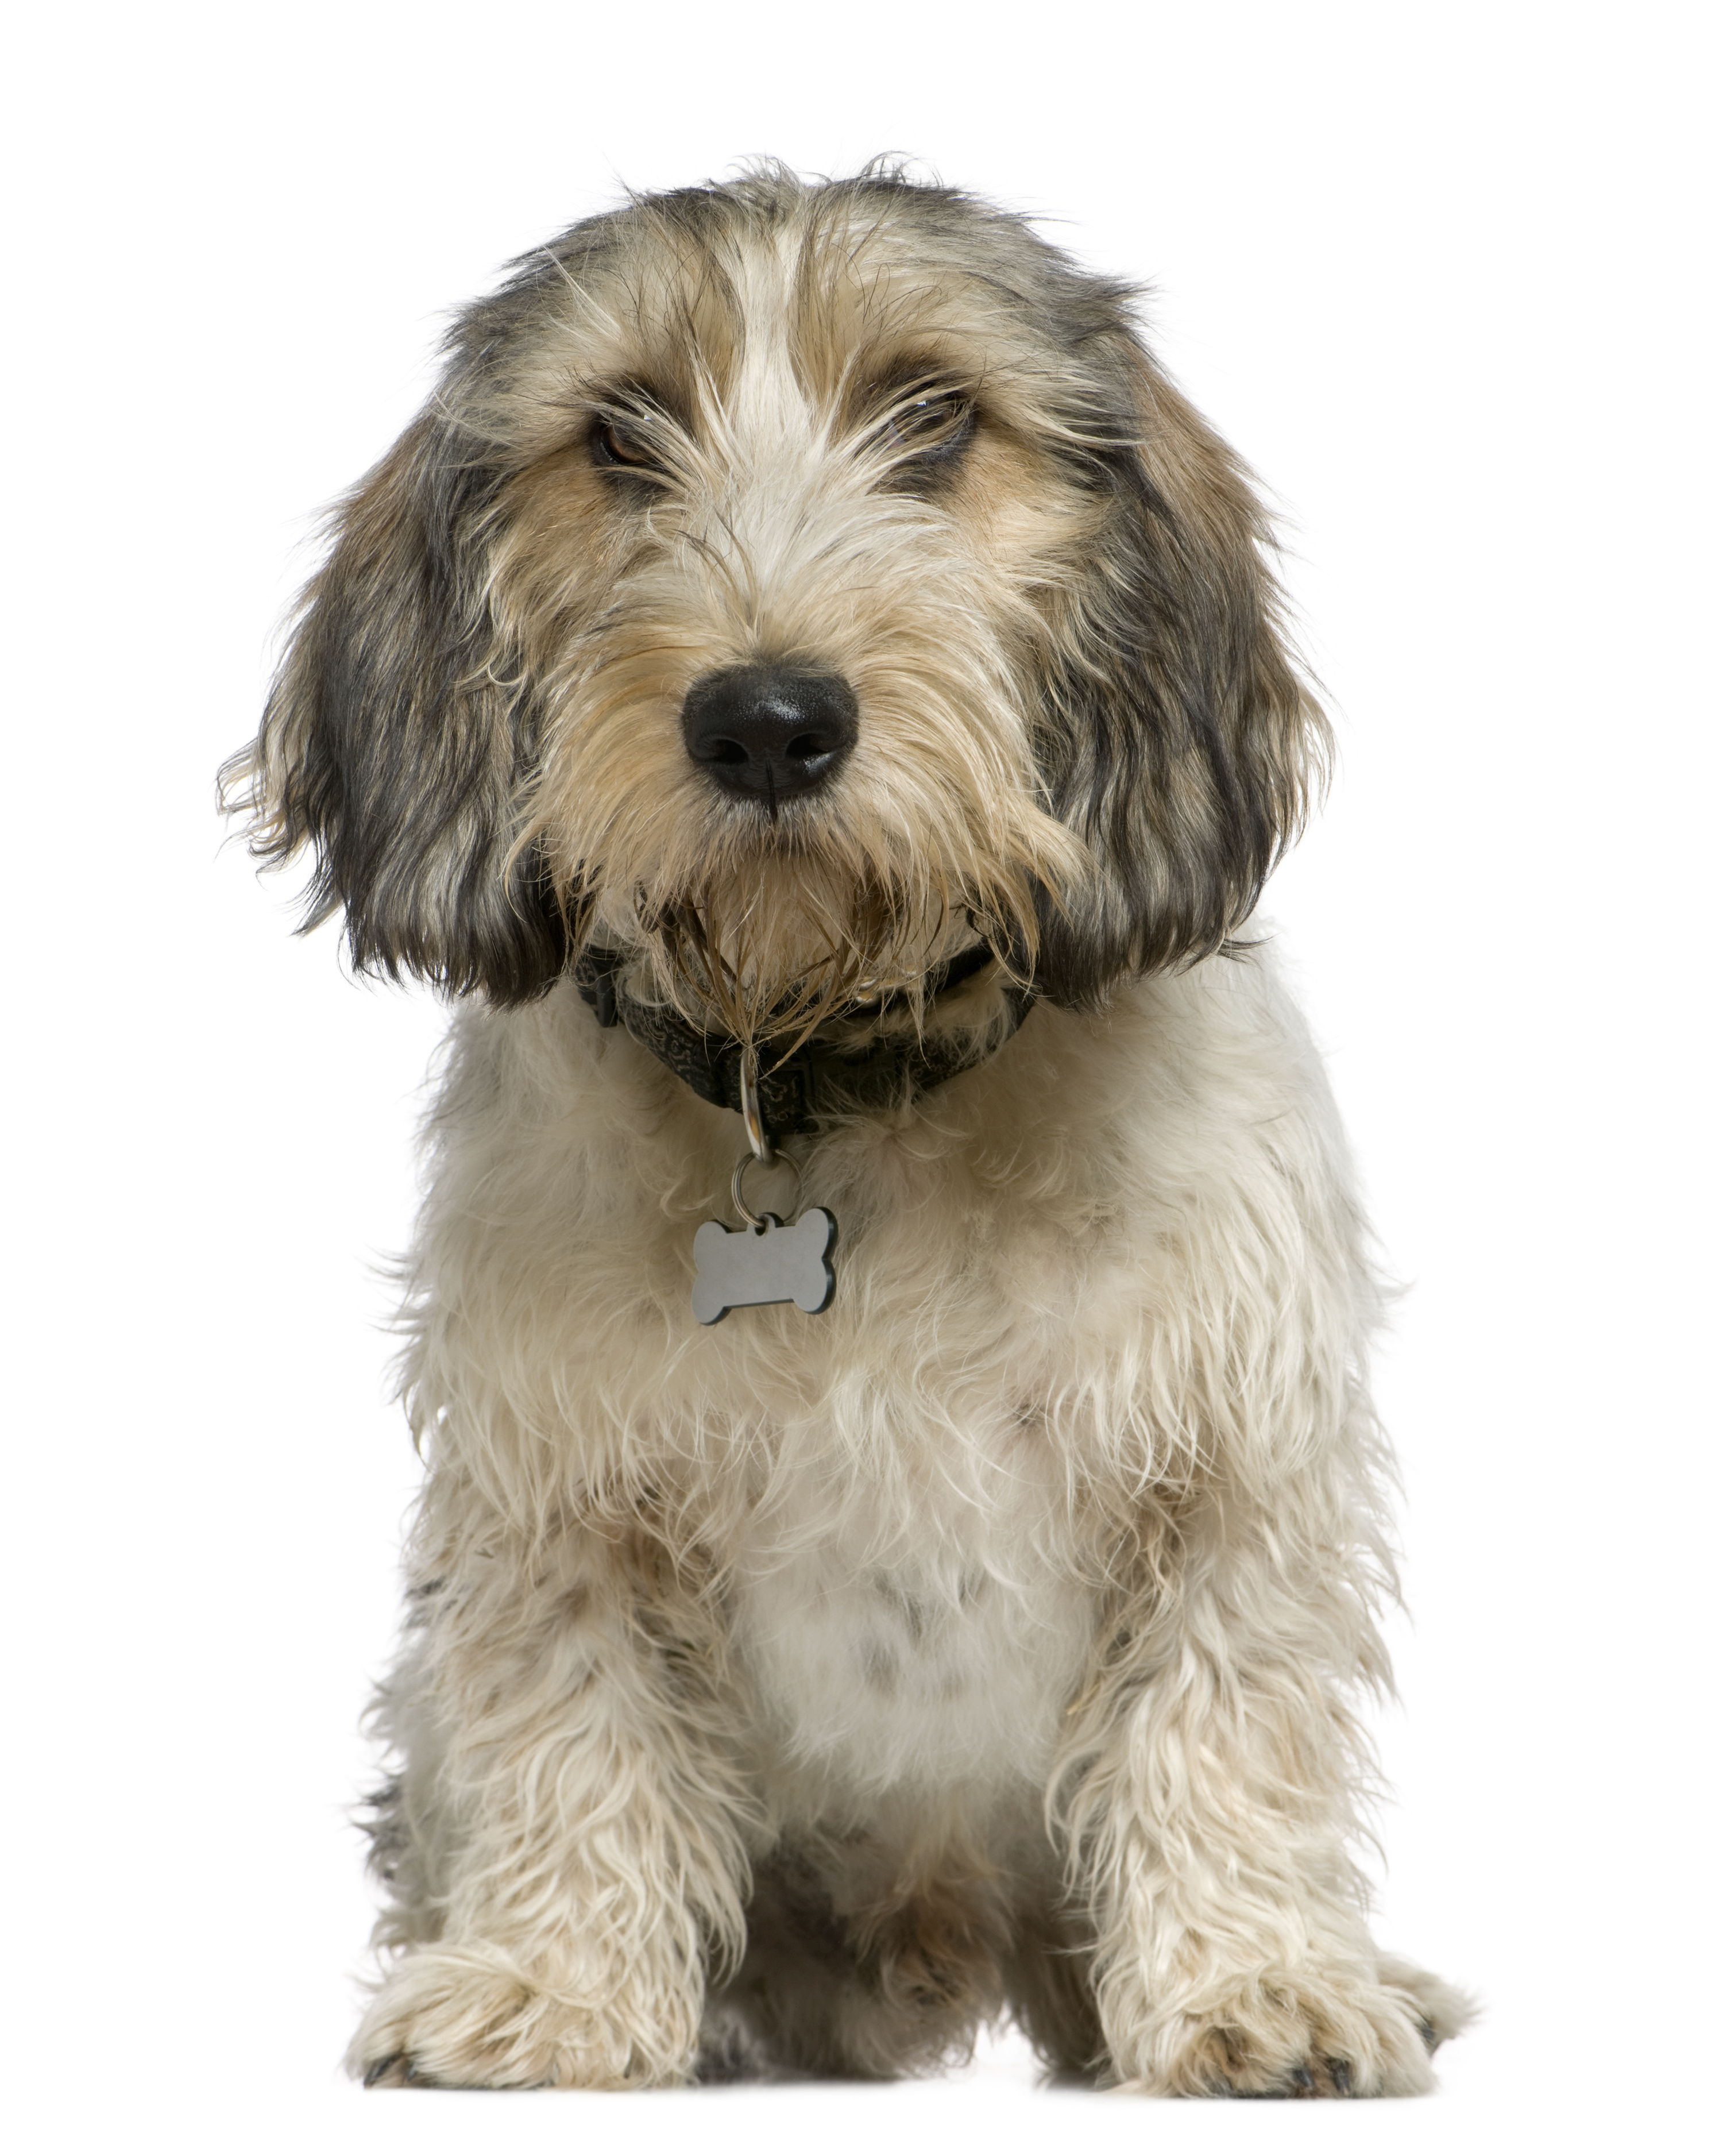 Petit Basset Griffon Vendeen dog sitting in front of white background